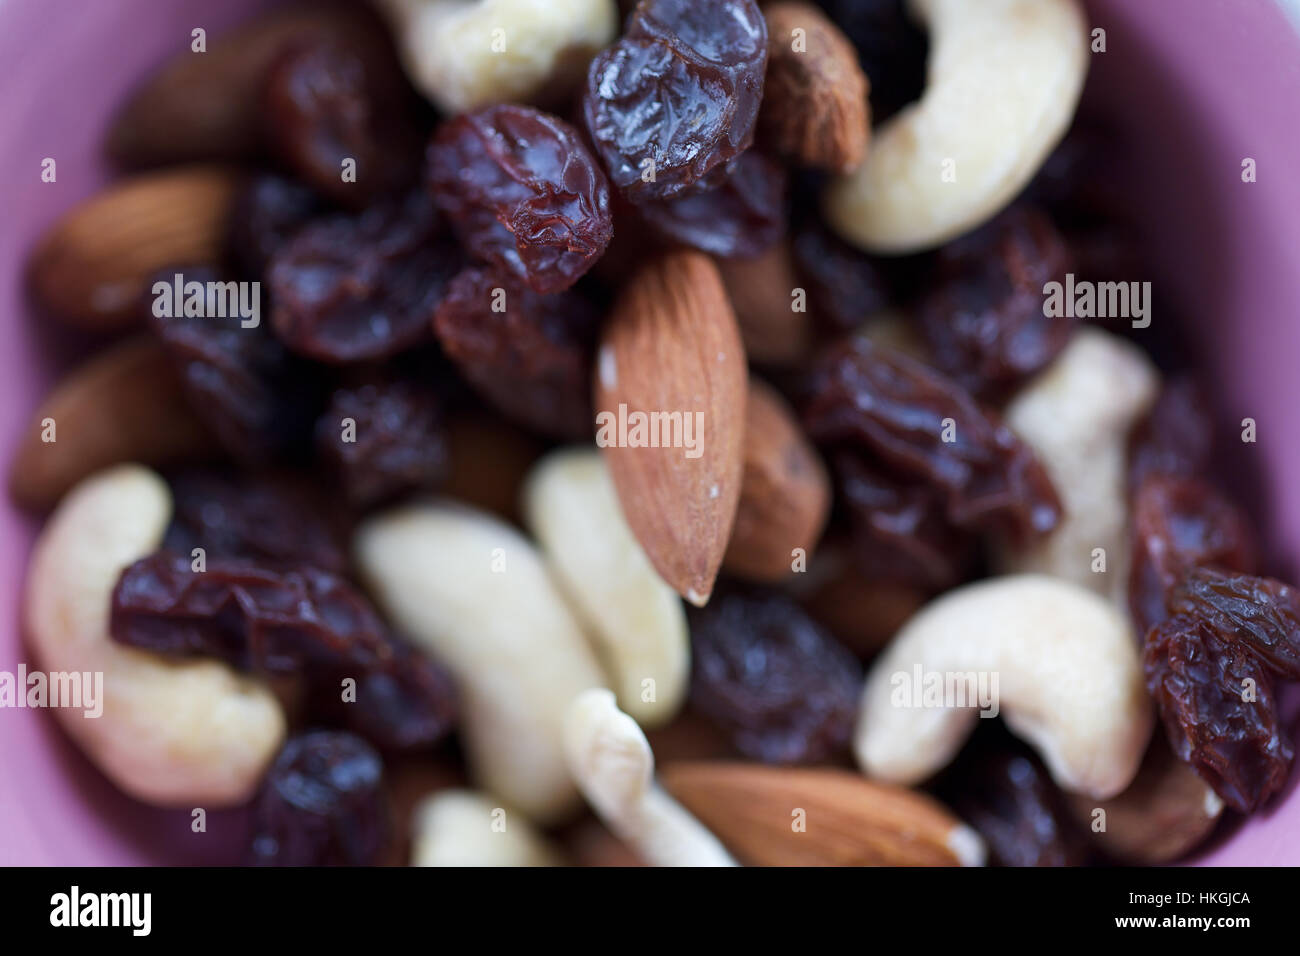 mixed dried fruit and nuts. almond, cashew, raisin, nutrition. - Stock Image